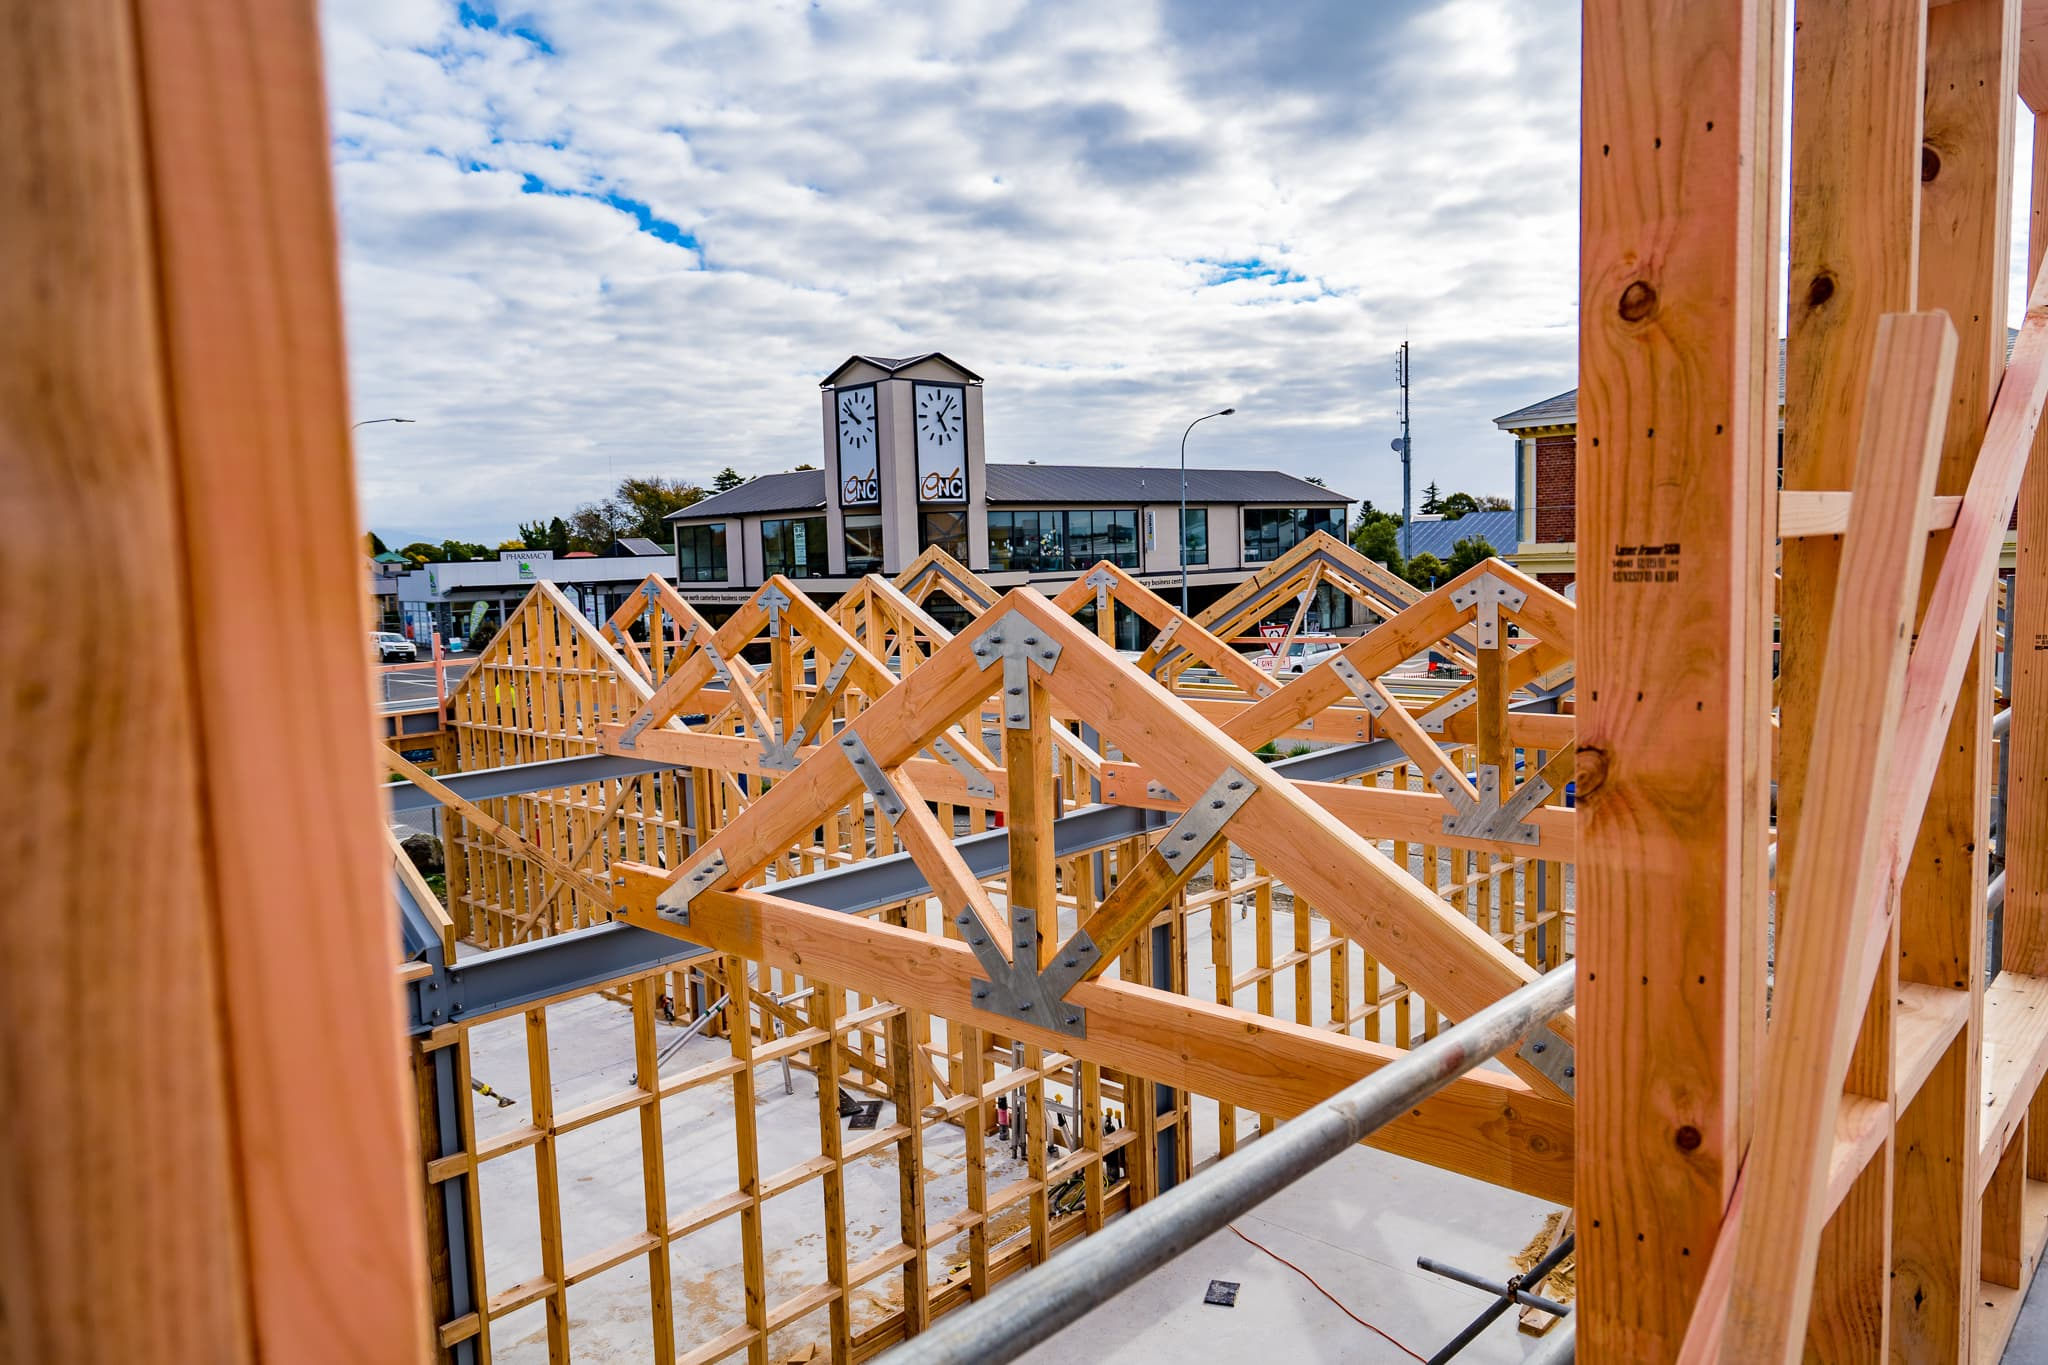 Dyers Road ITM teams up with VIP Frames & Trusses to bring you a great prenail frame & truss service in Canterbury